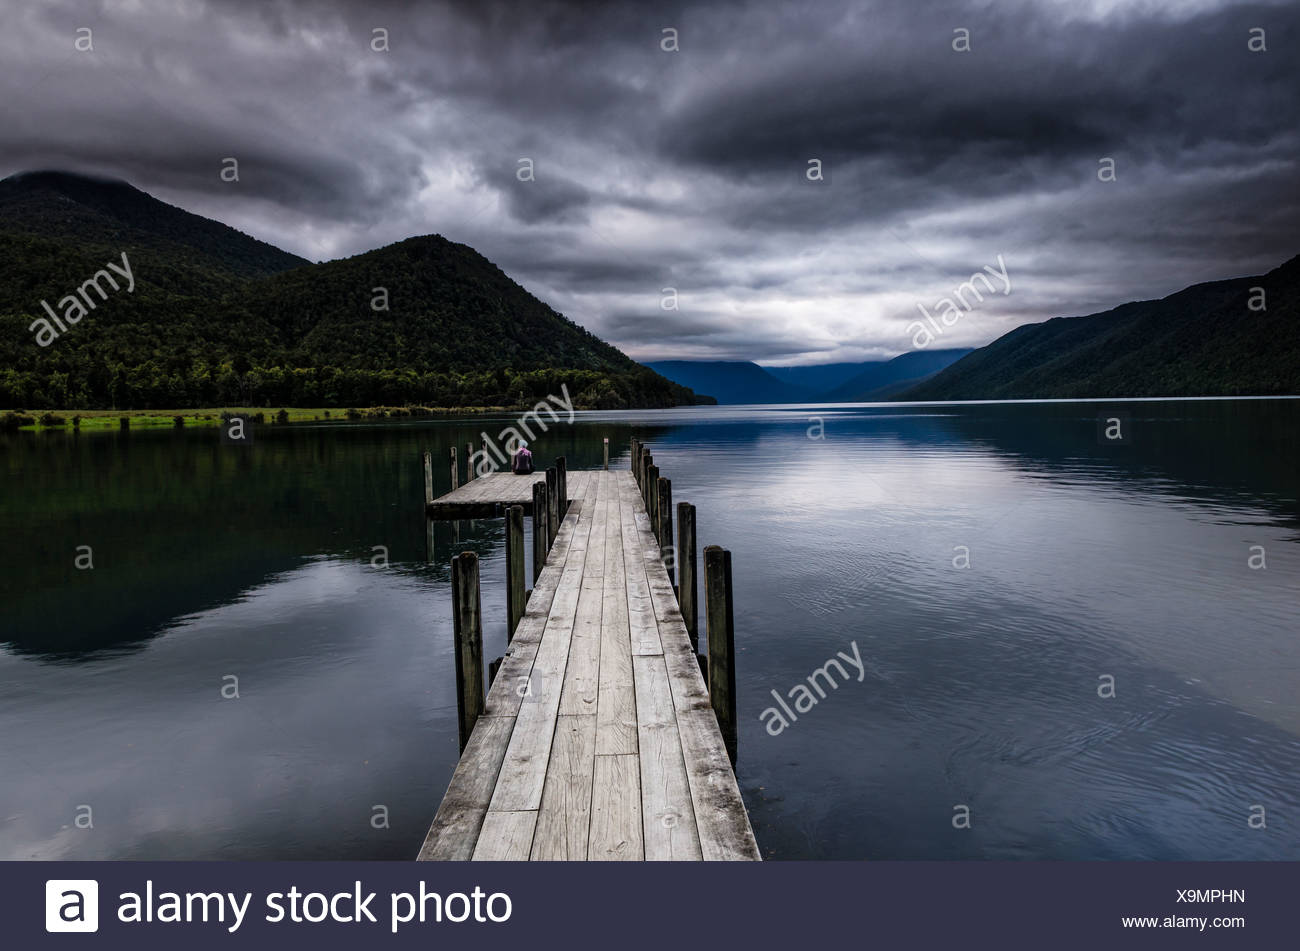 Woman sitting in a gloomy weather mood at the end of a wooden footbridge, Lake Rotoroa, South Island, New Zealand - Stock Image